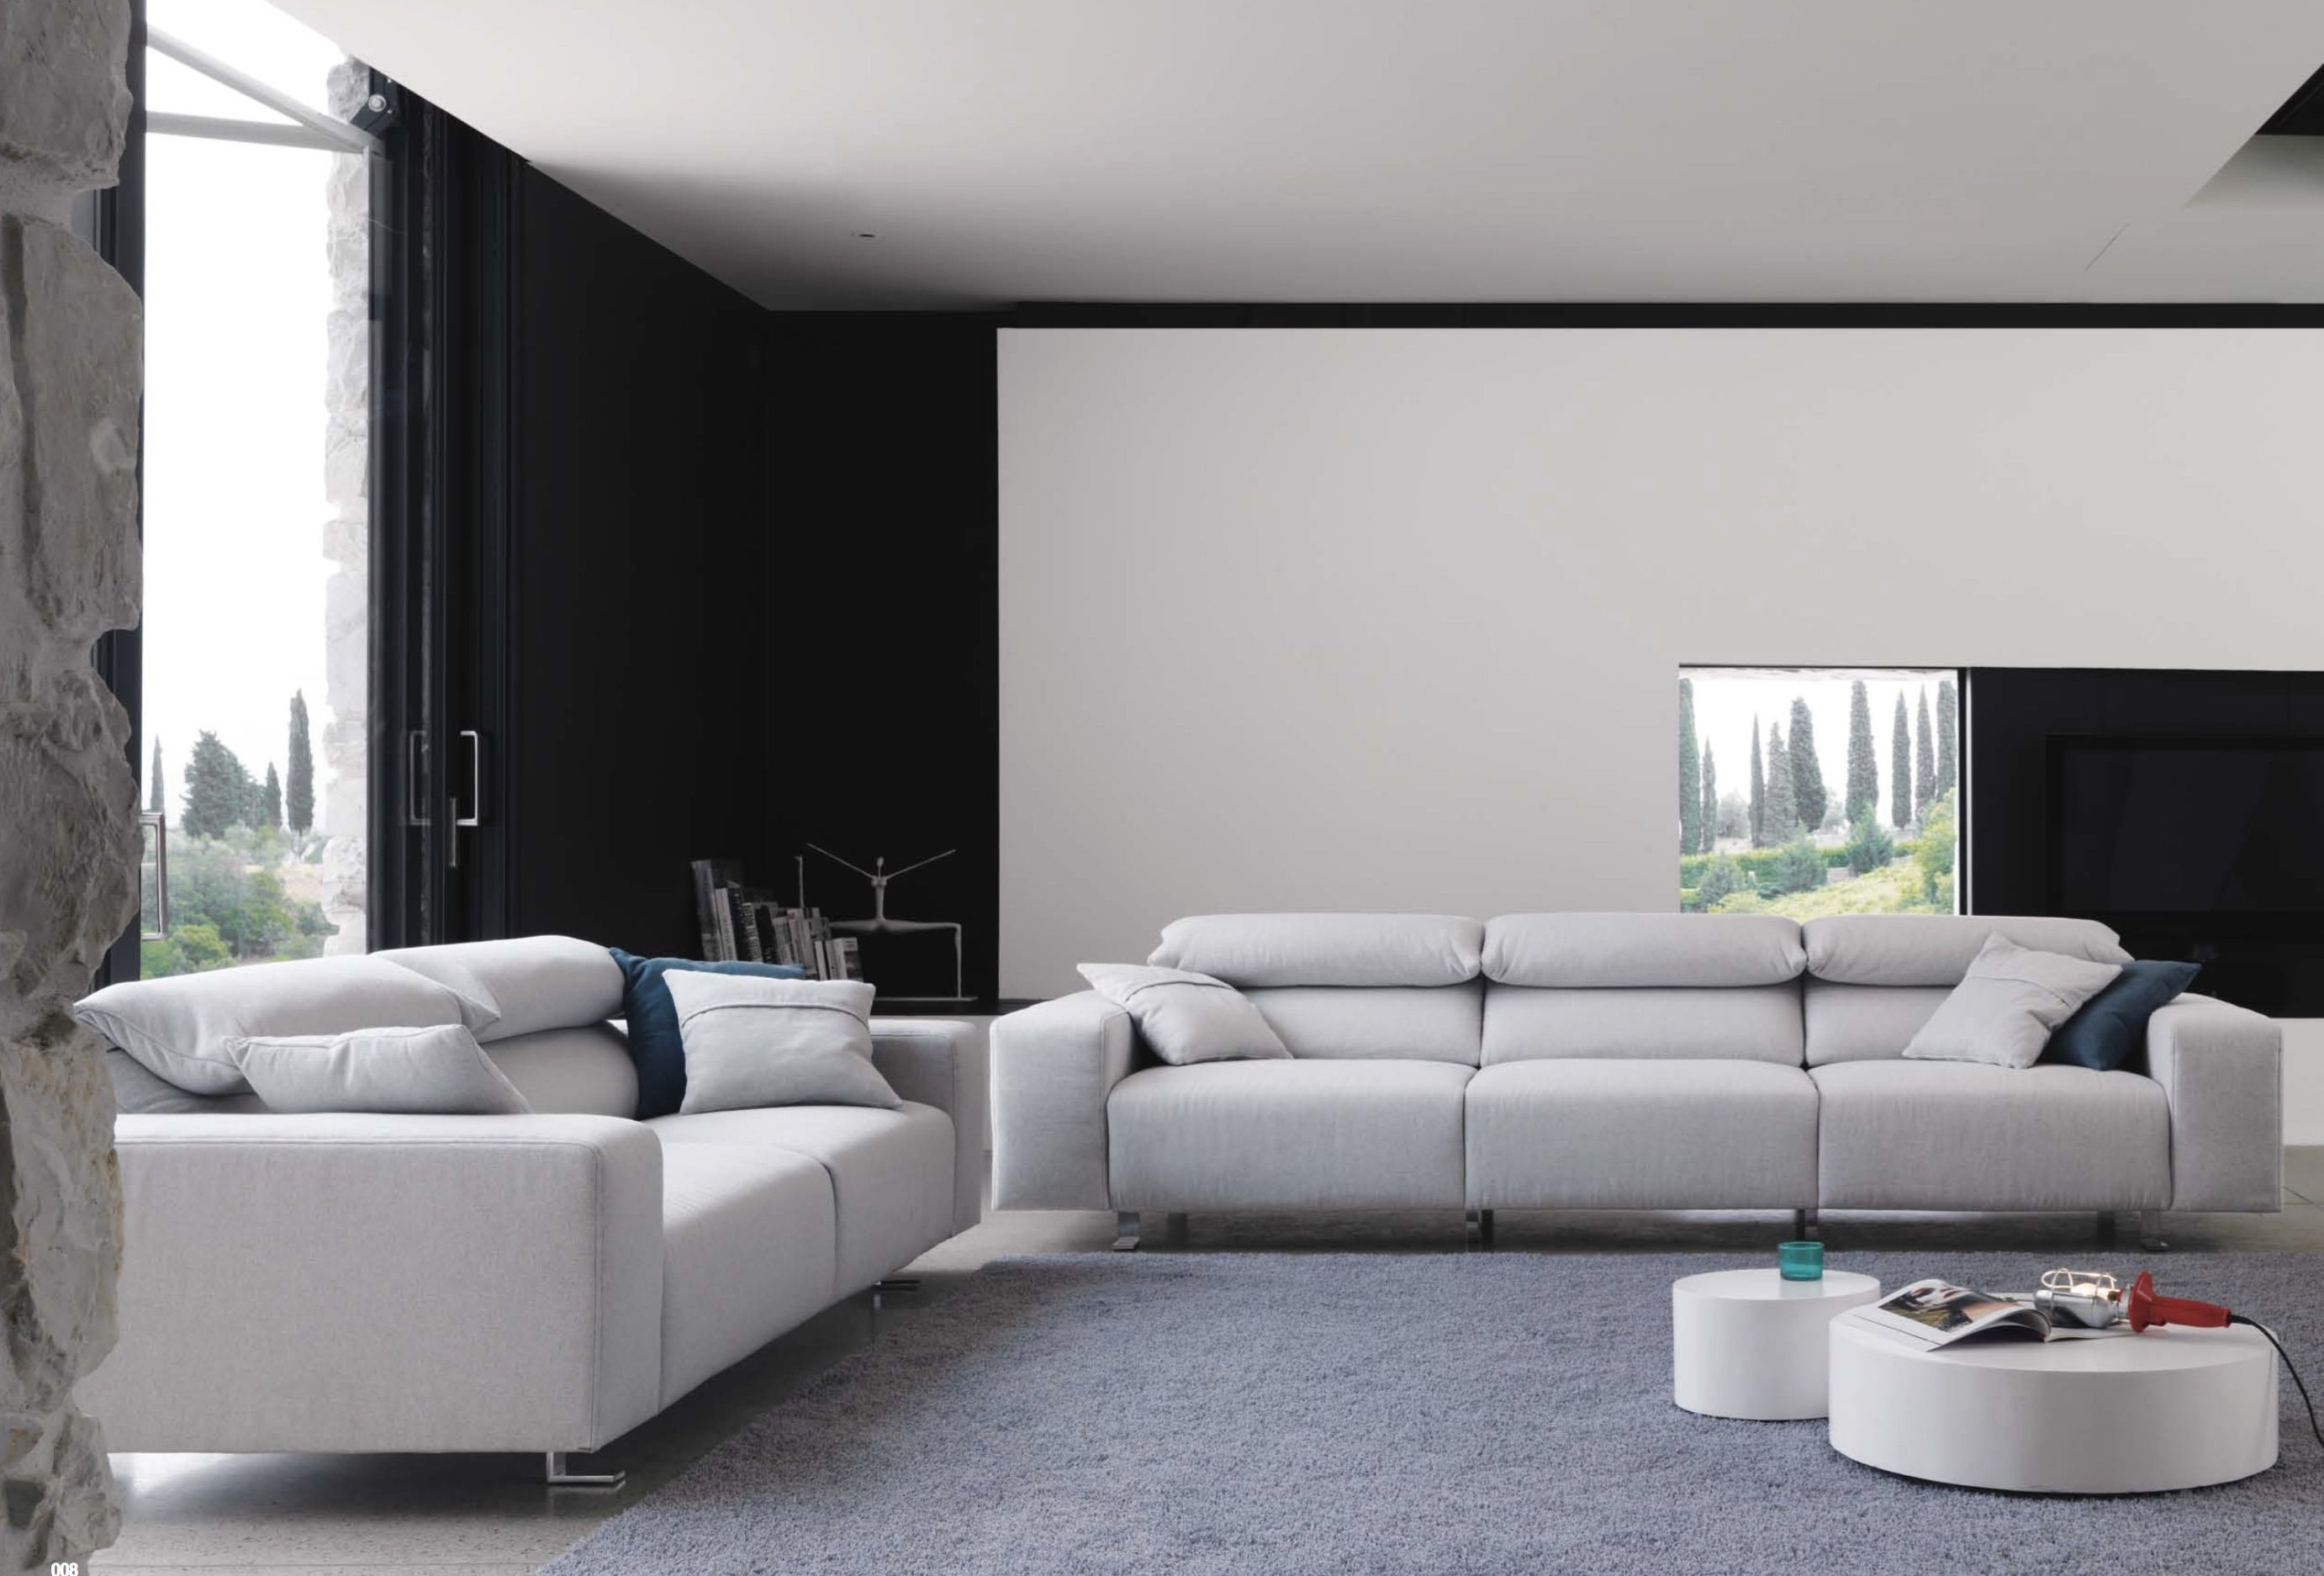 superb sofas and more photo-Beautiful sofas and More Image